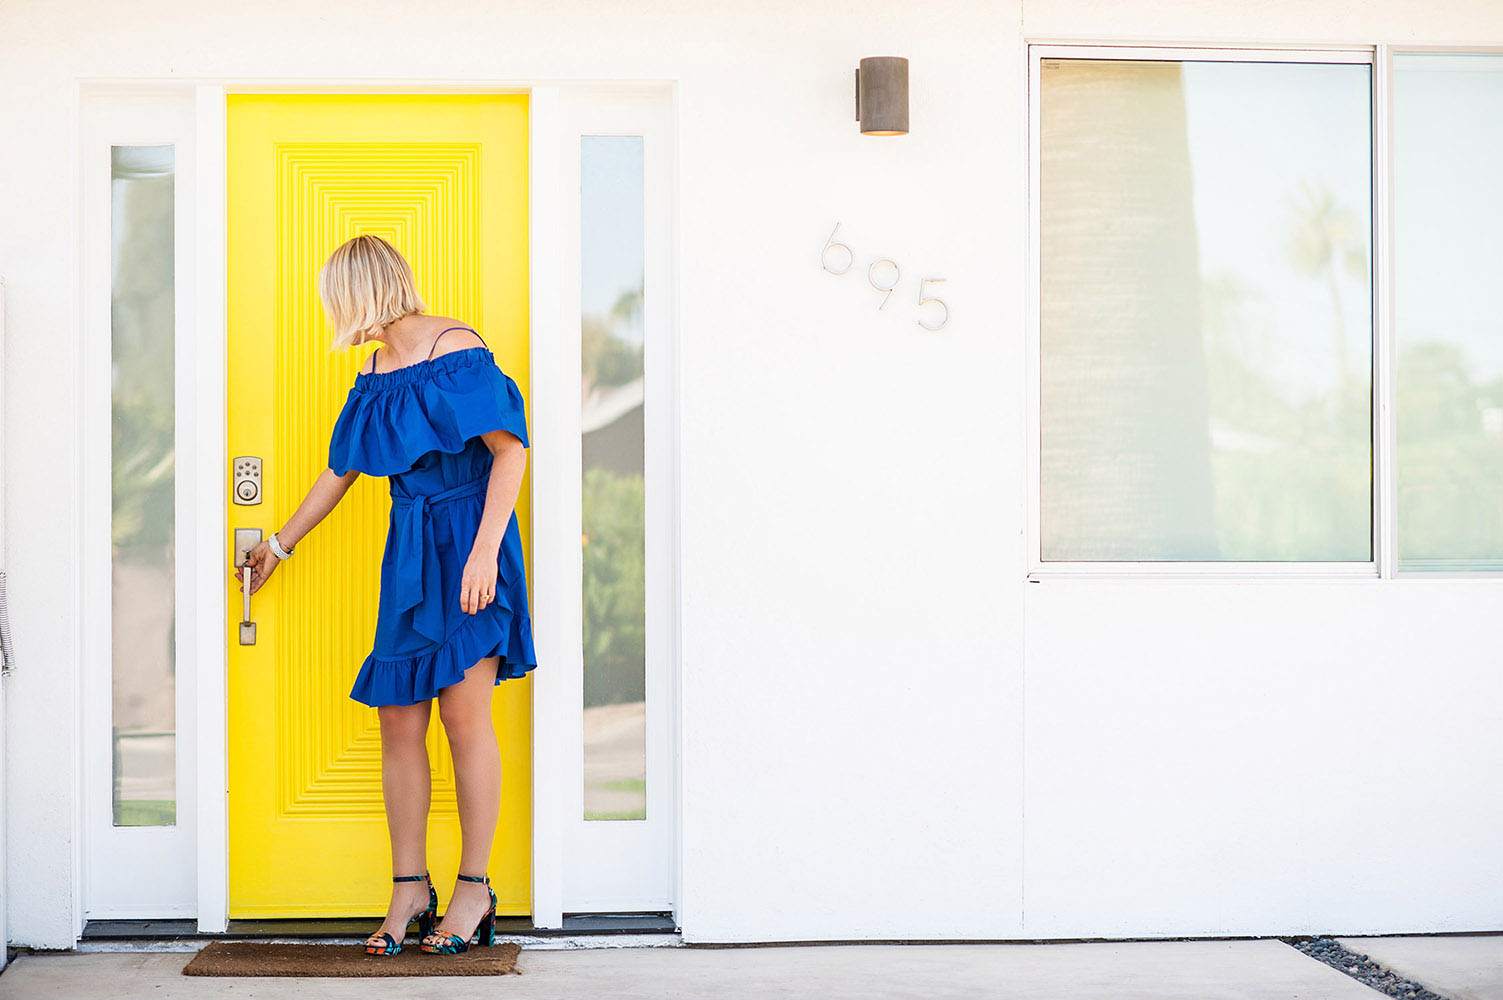 Girl in Blue dress with yellow door